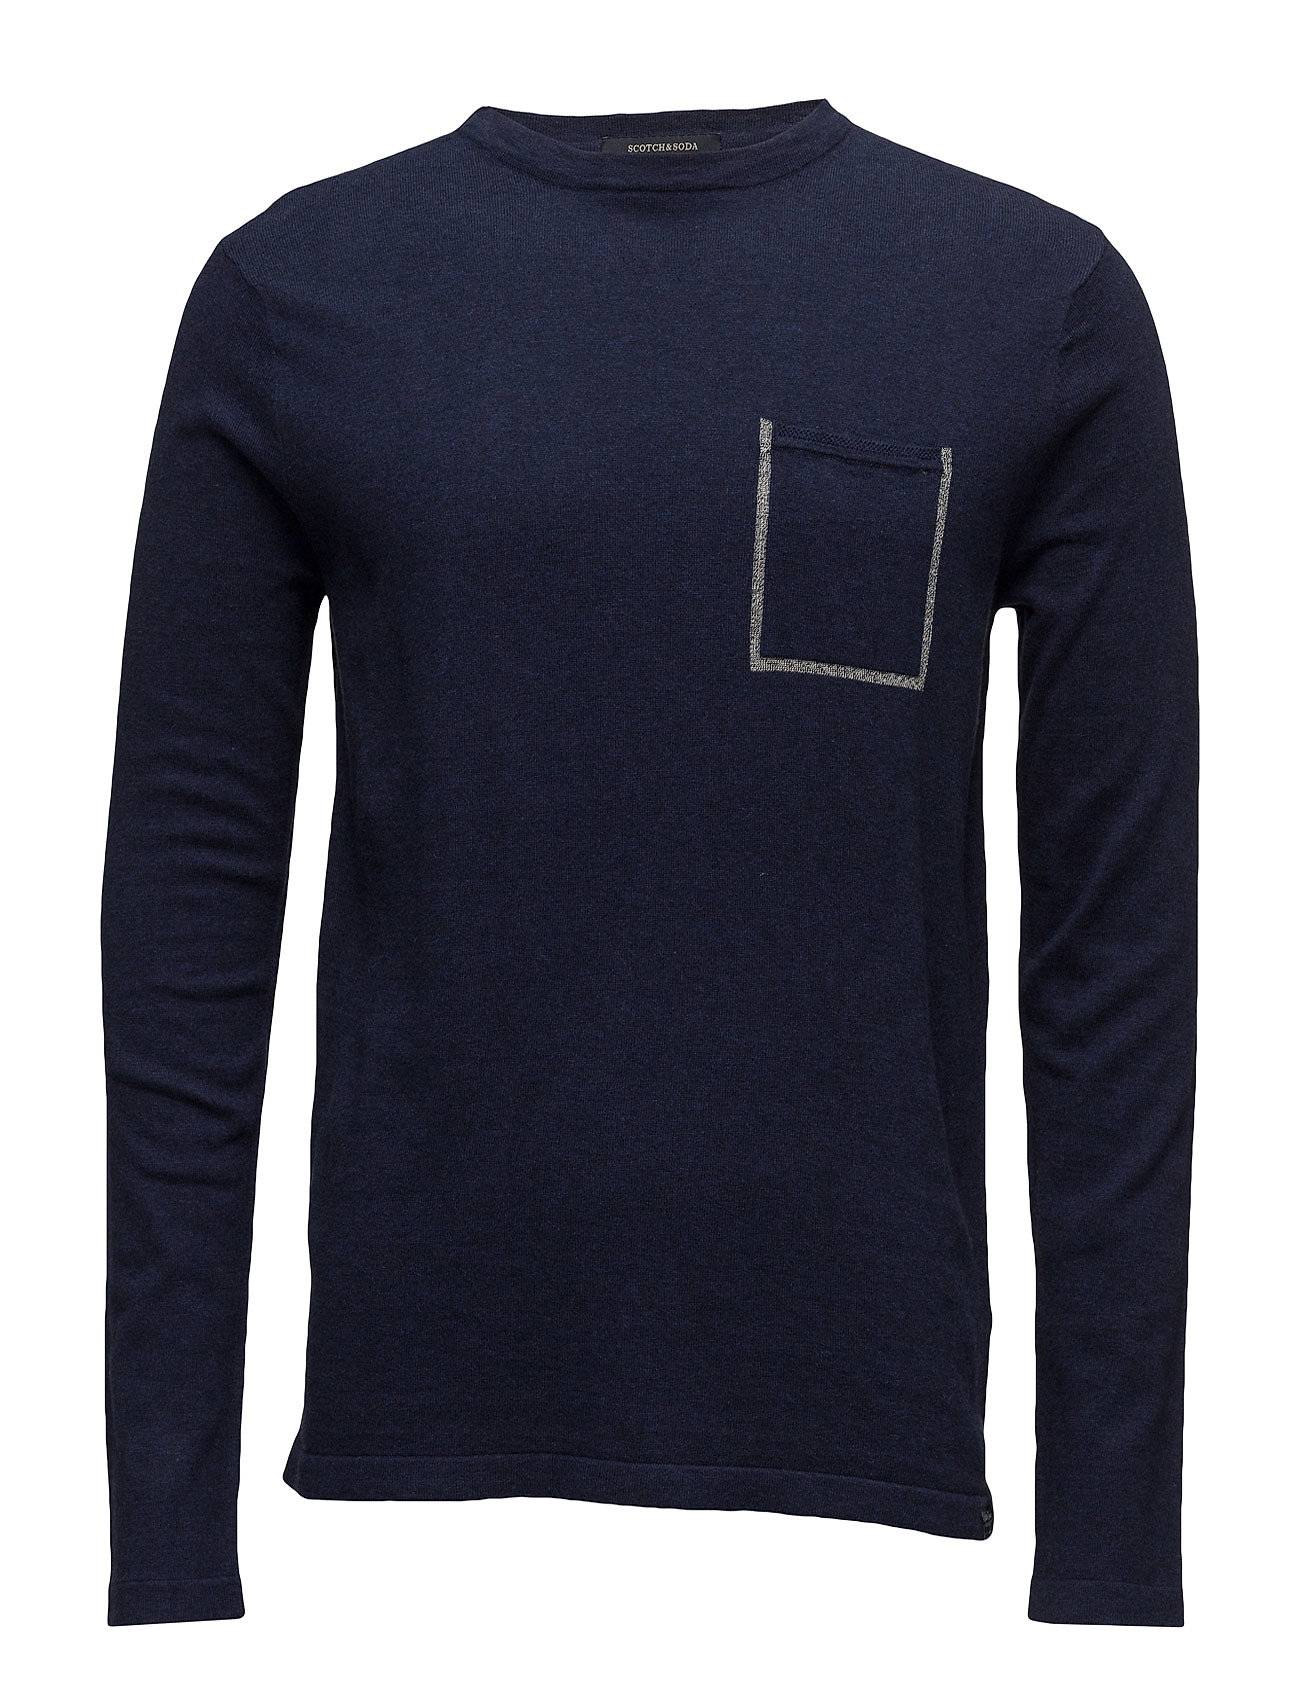 Scotch & Soda Crewneck Pullover In Soft Cotton Quality  With Contrast Ches